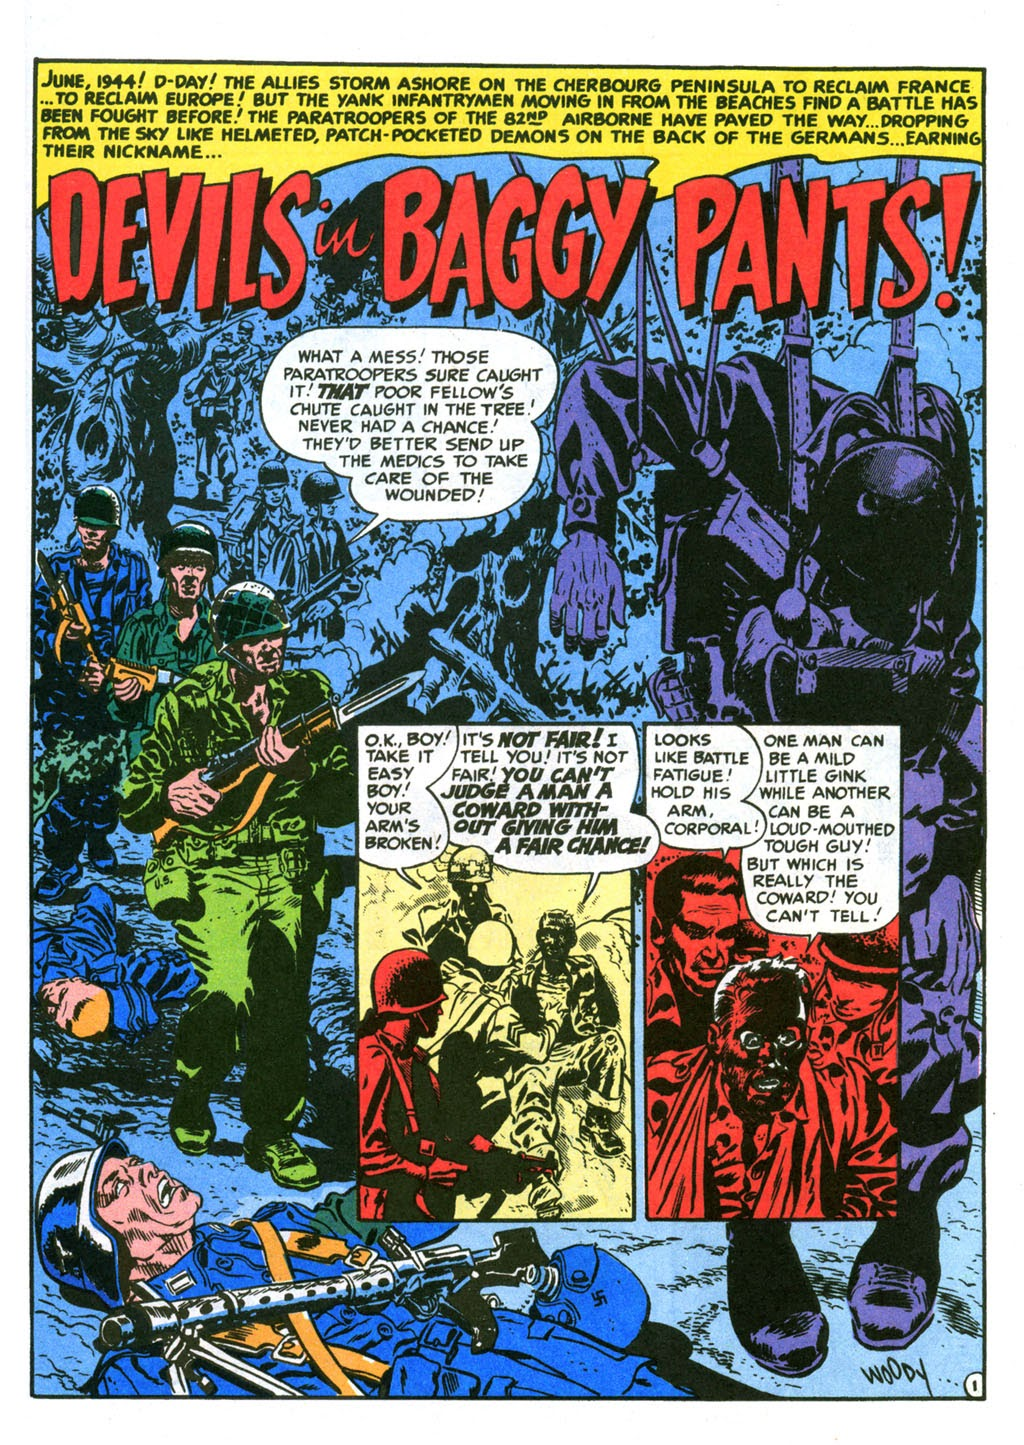 Devils in Baggy Pants ! from Two Fisted Tales 20